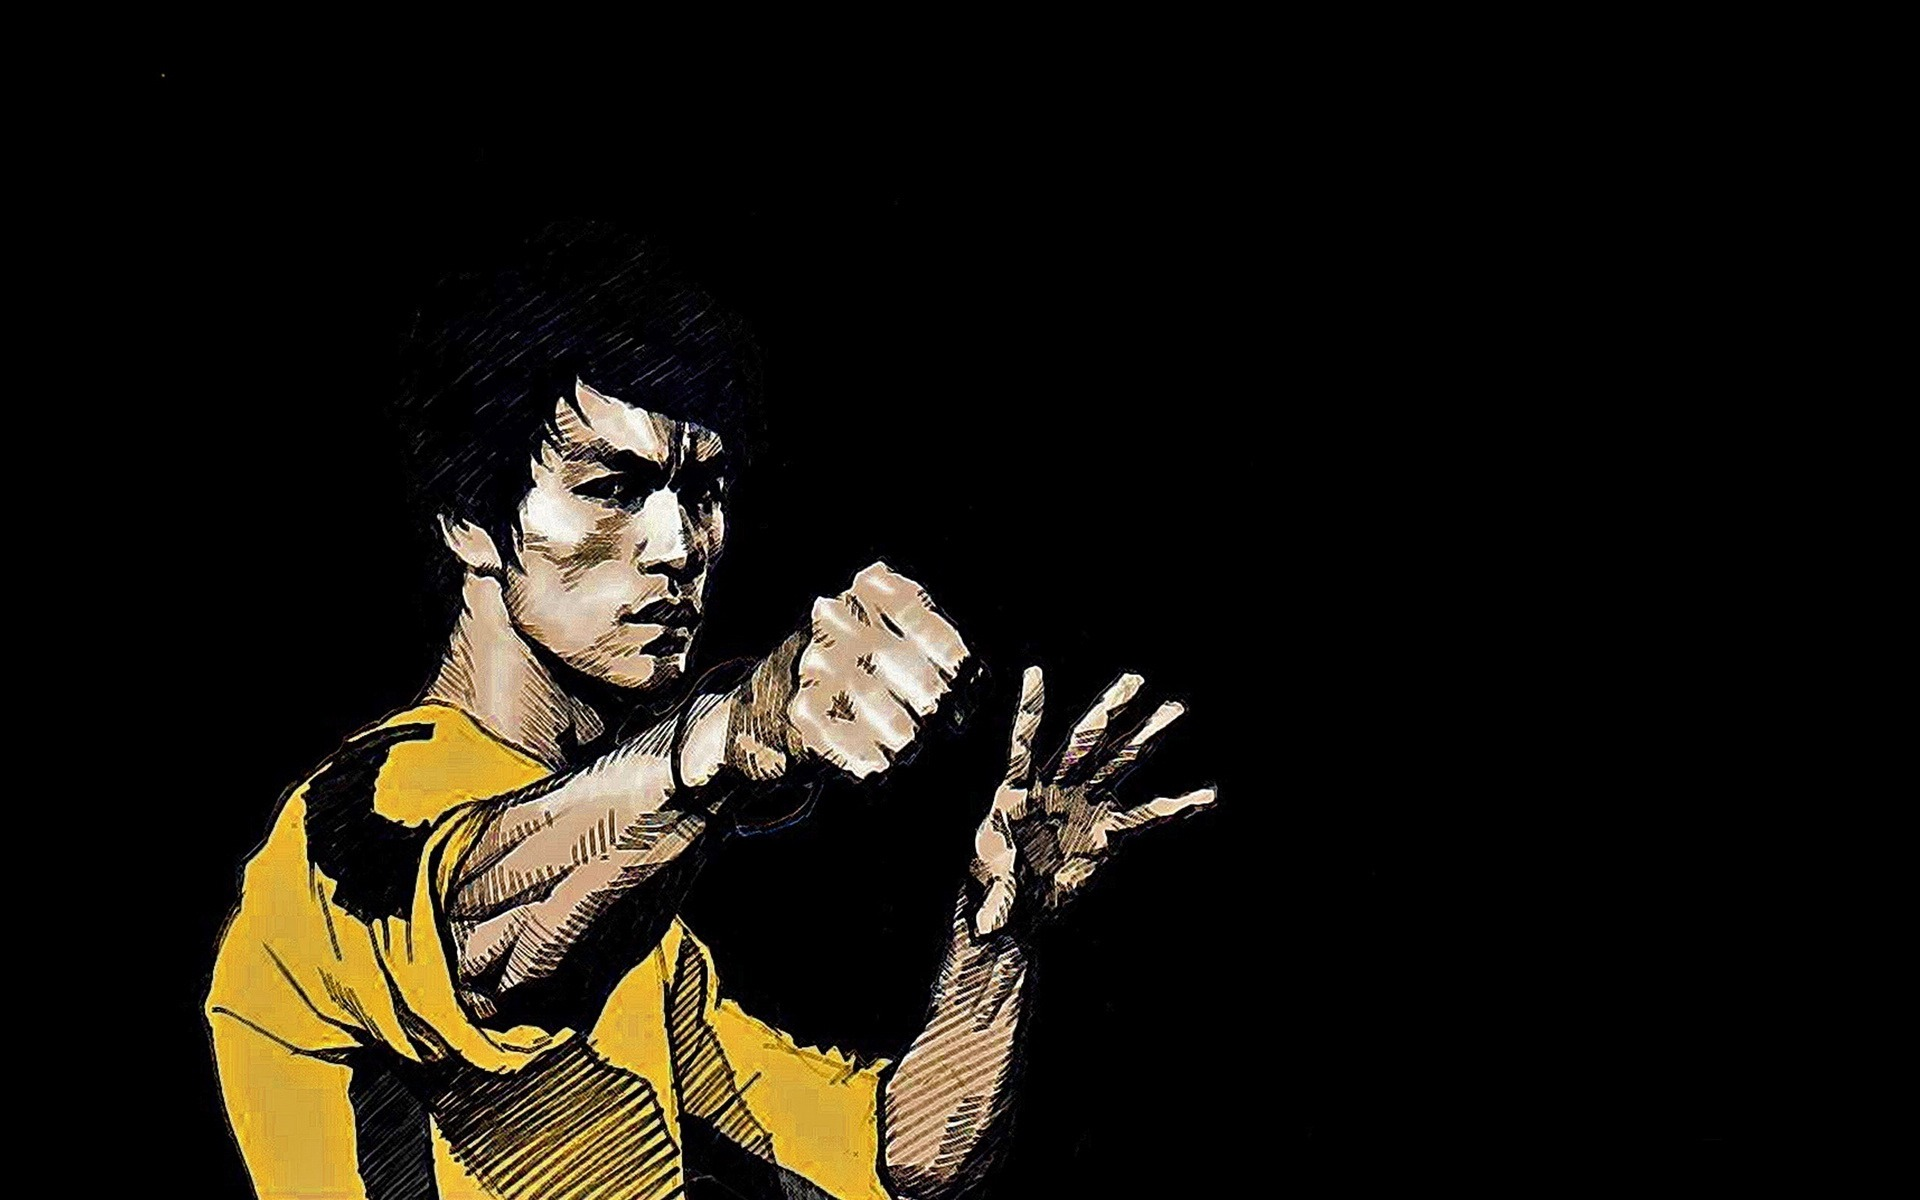 Bruce Lee Drawing Photo 1920x1200